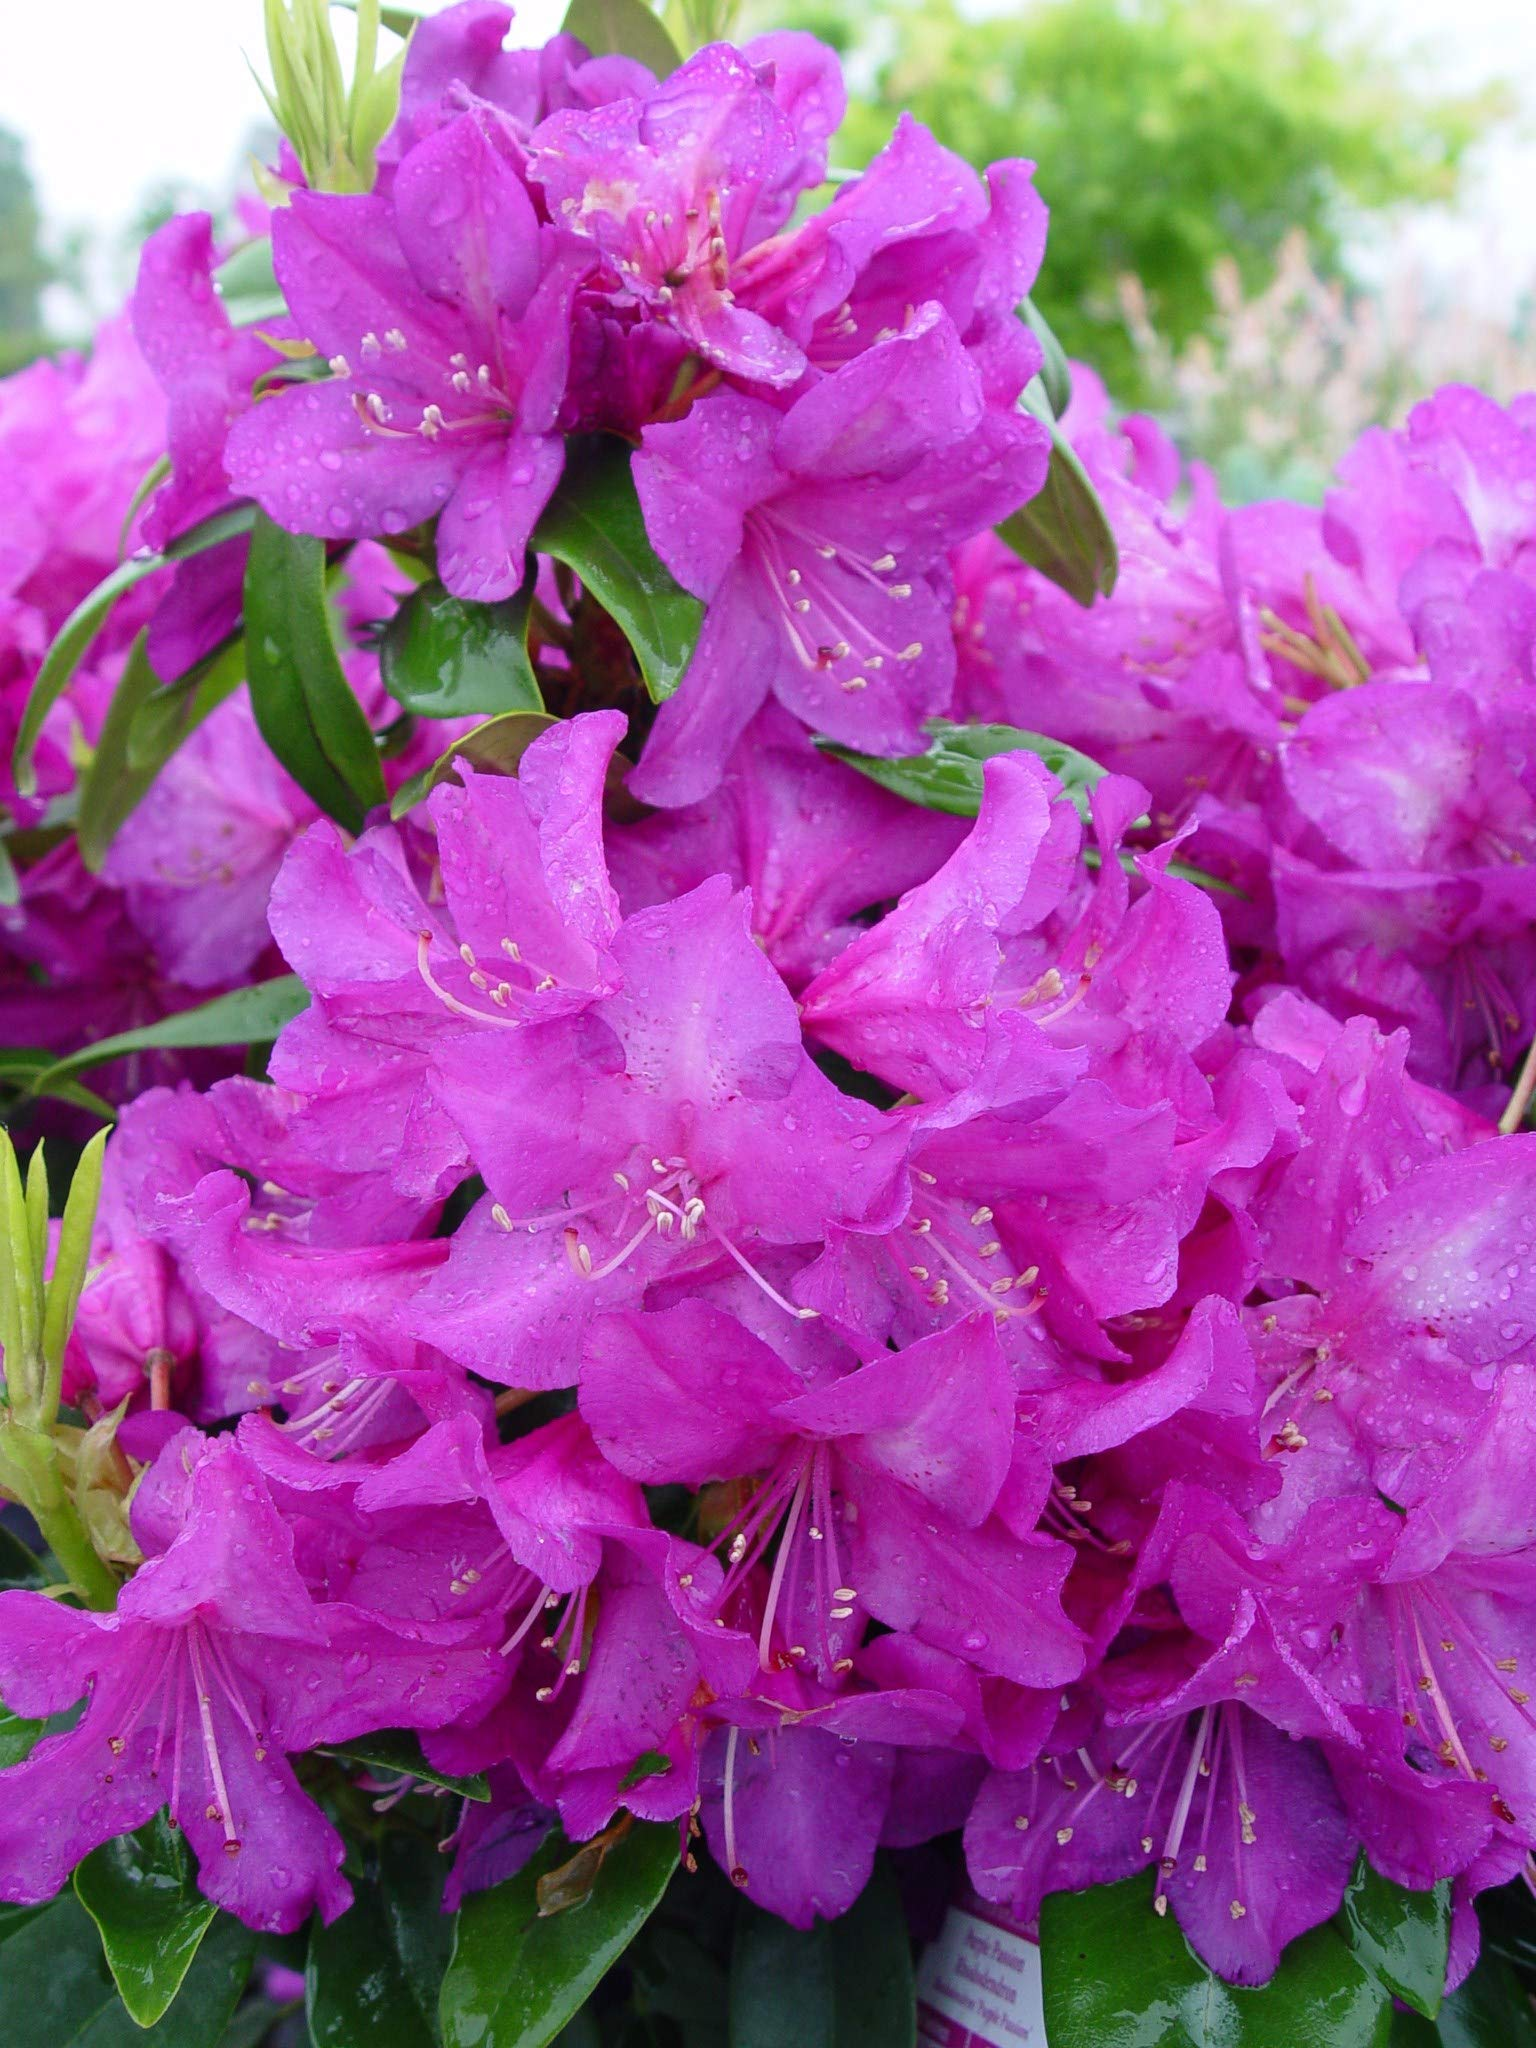 Rhododendron 'Purple Passion' (Rhododendron) Evergreen, purple flowers, #2 - Size Container by Green Promise Farms (Image #3)